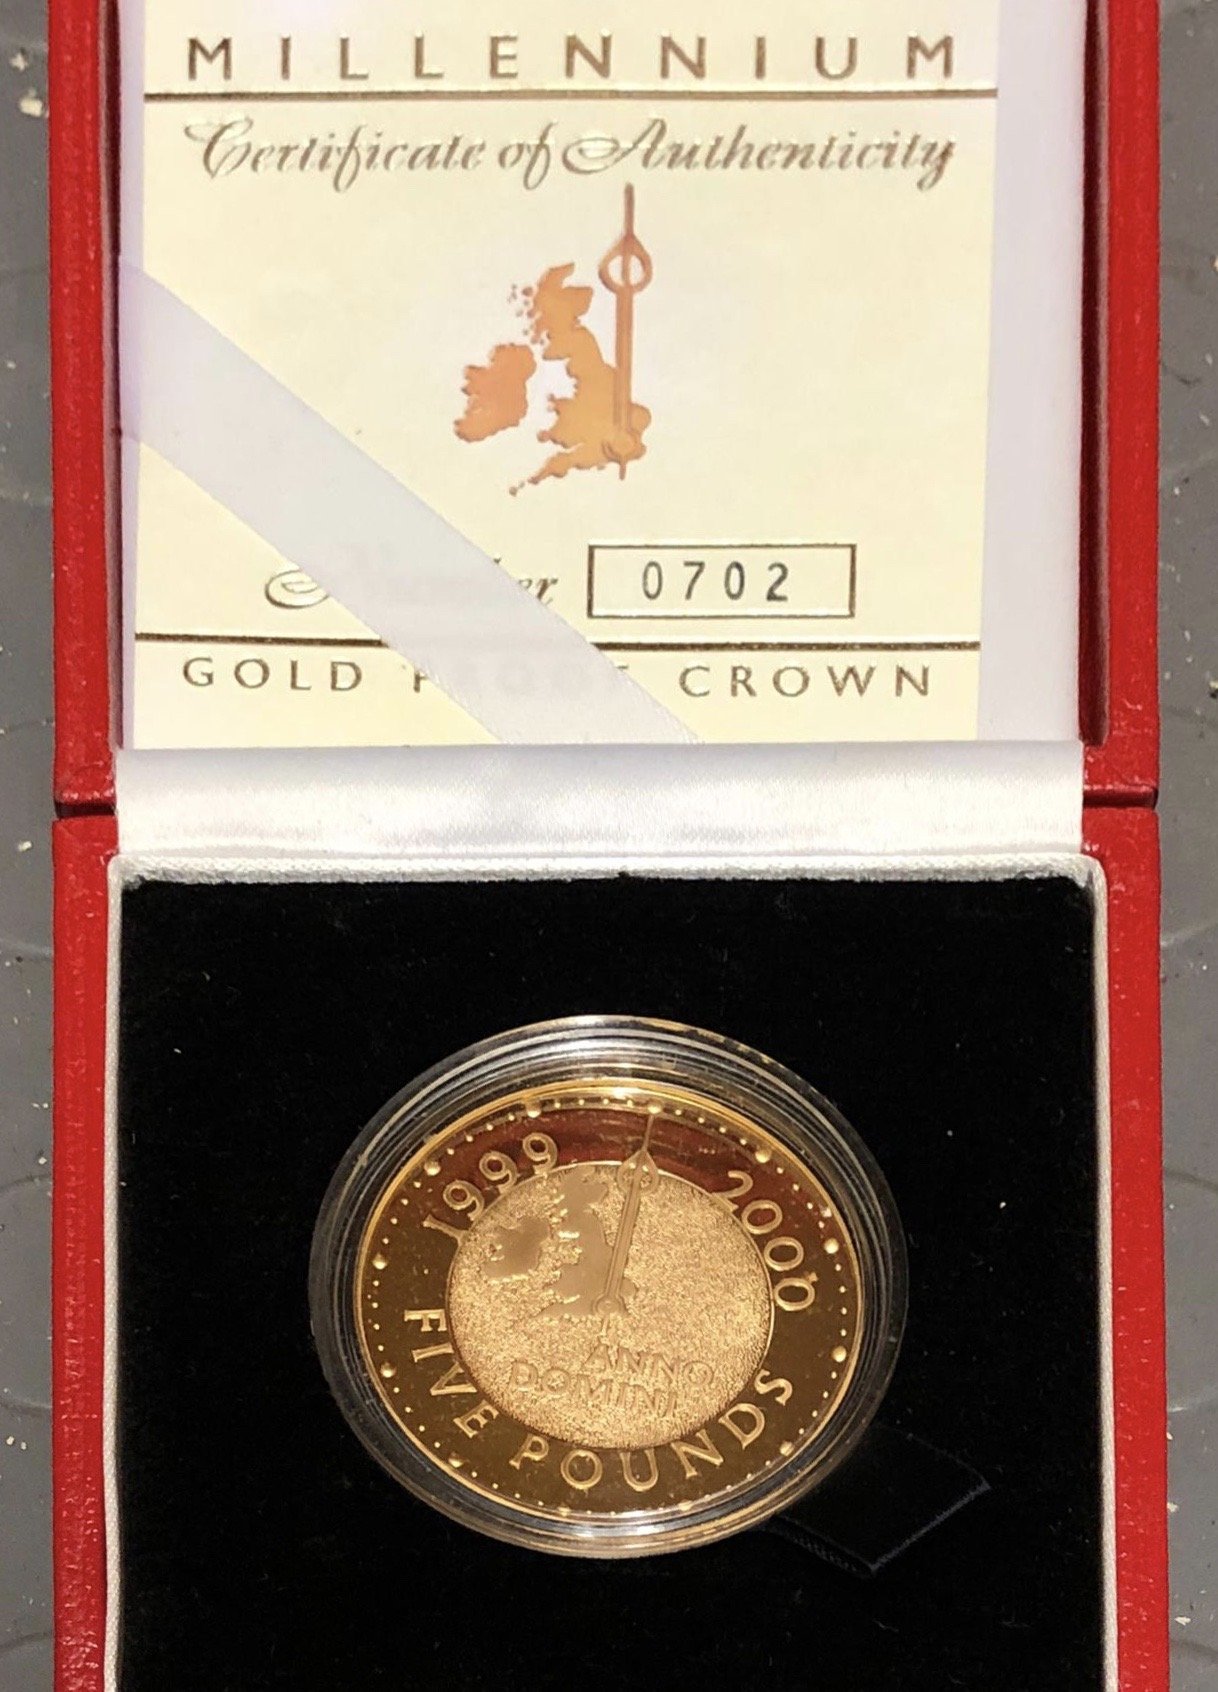 2000 Millennium Gold Proof Five Pounds